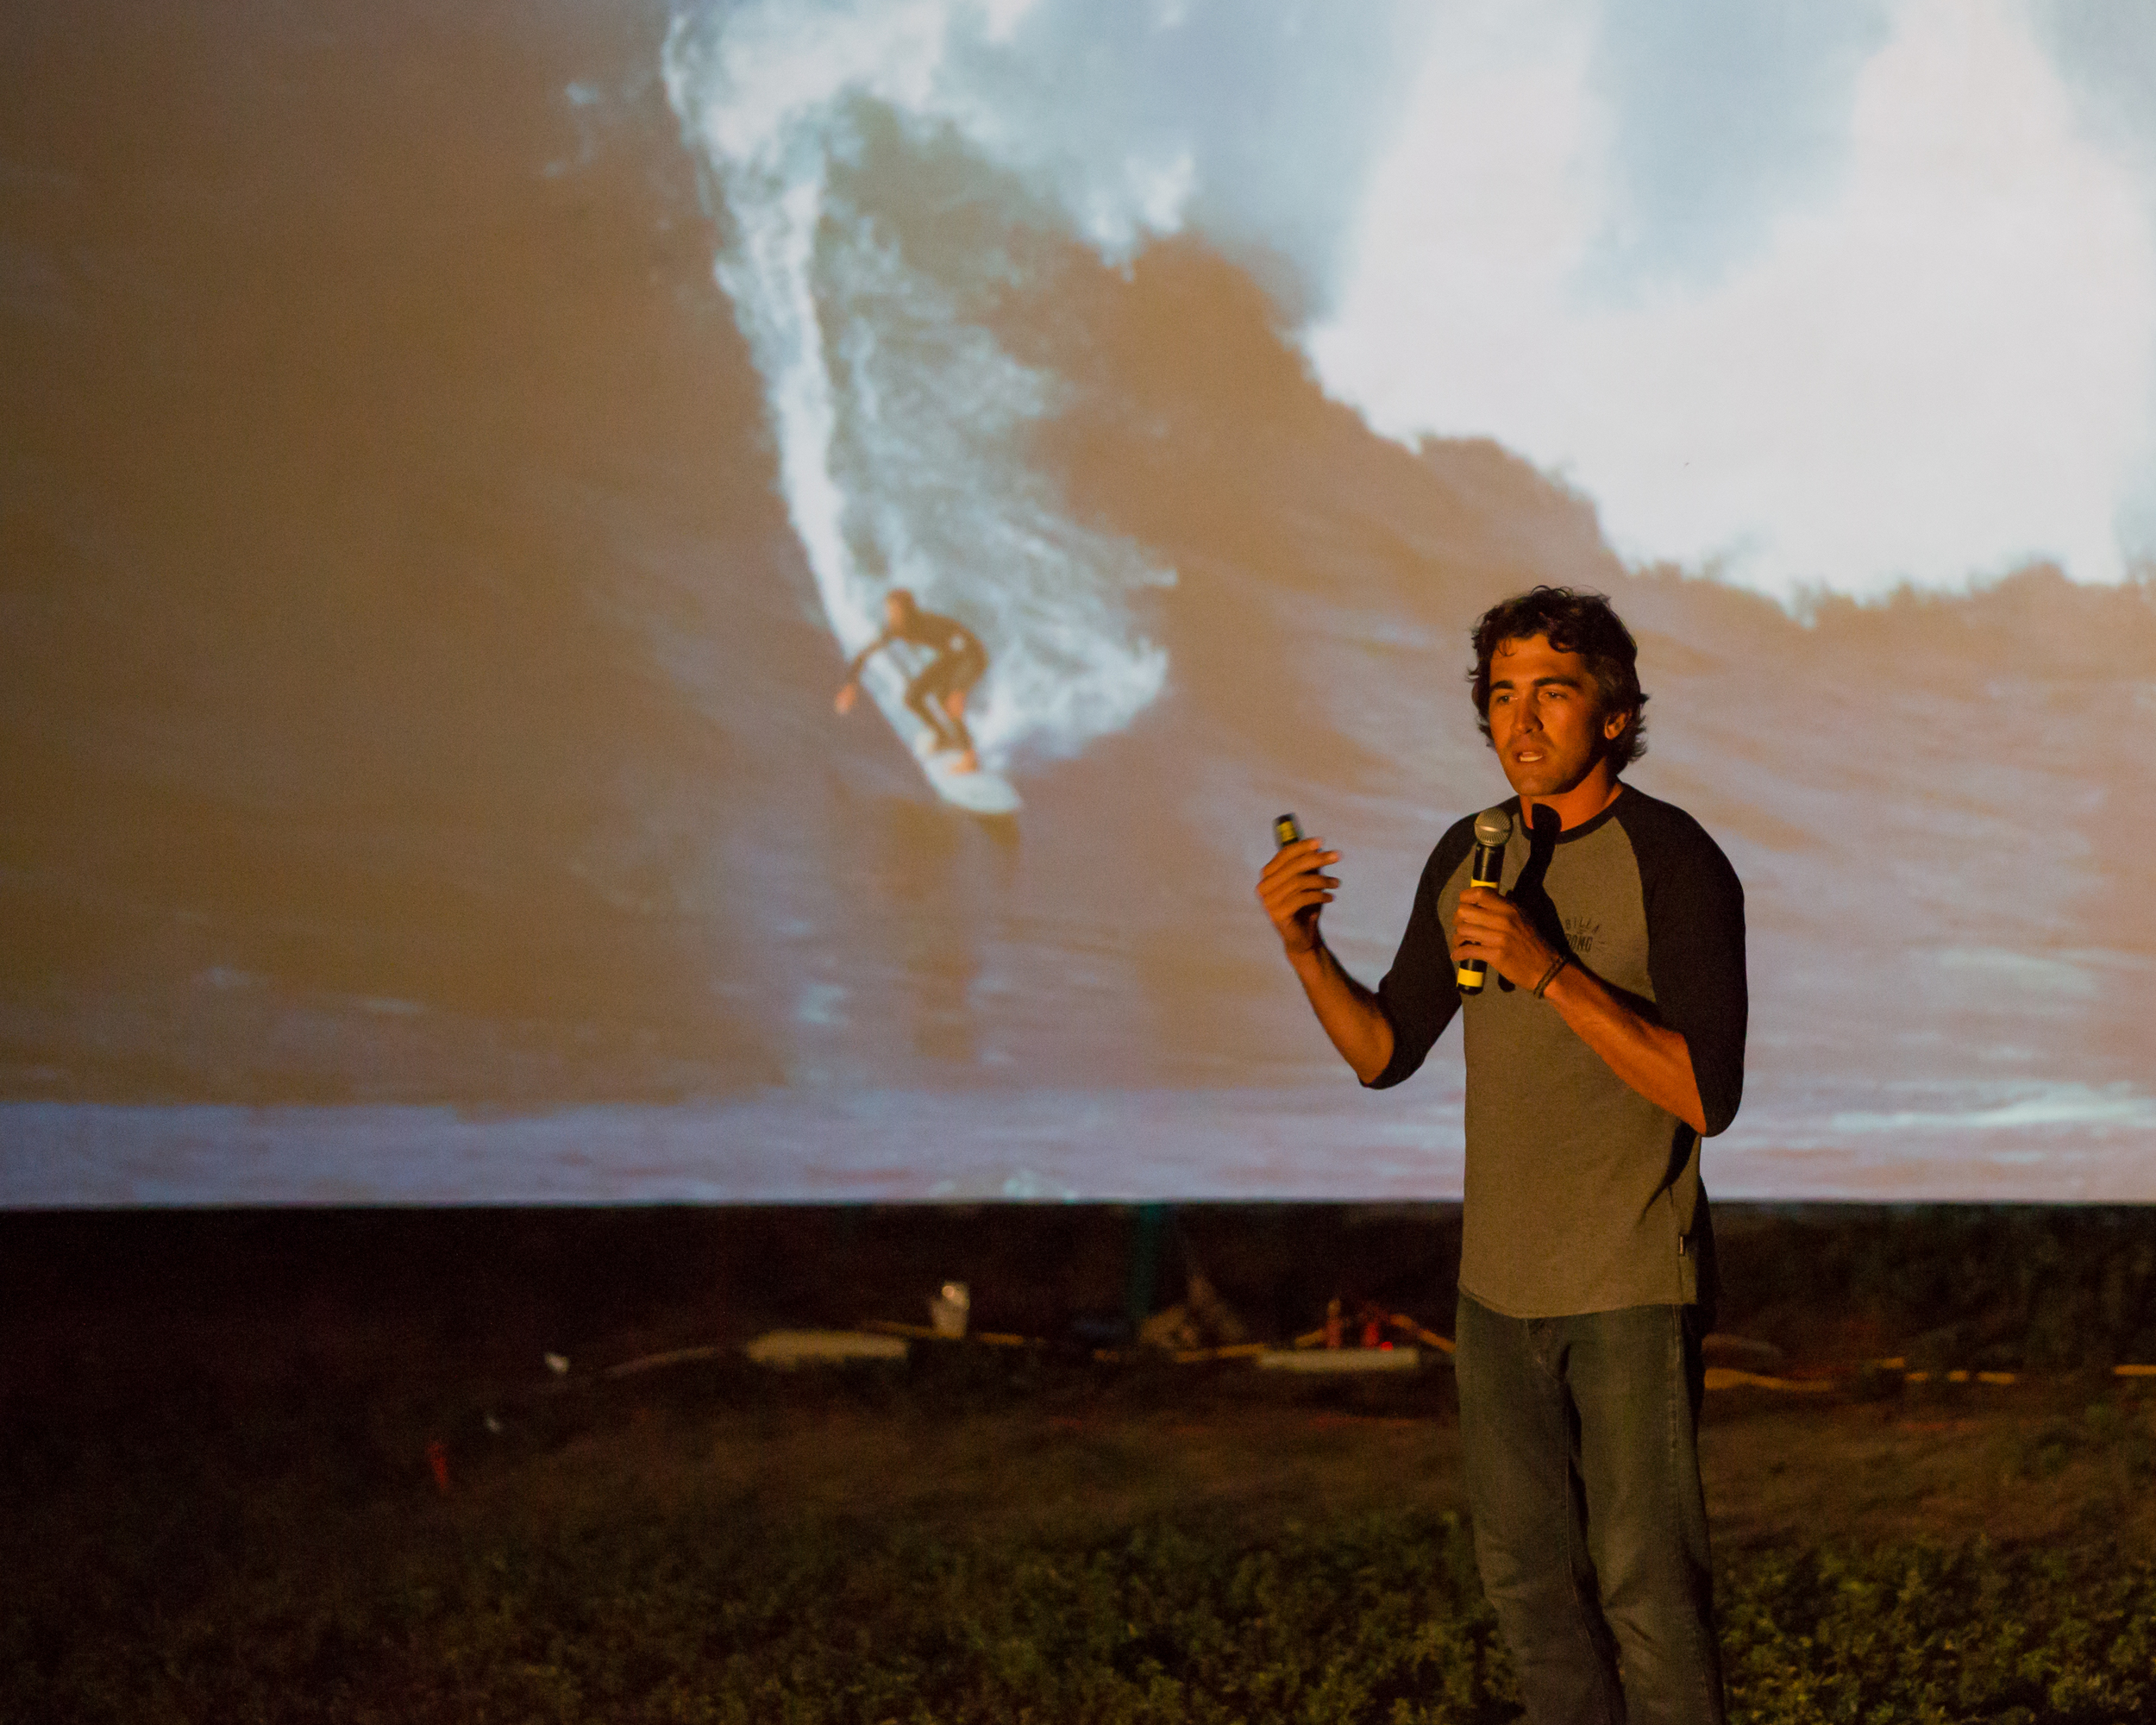 Big-wave surfer Greg Long speaking during his presentation at the MVFF's second annual SURF NIGHT on August 6, 2015,at Owen Park in Vineyard Haven. Photo by Maria Thibodeau.